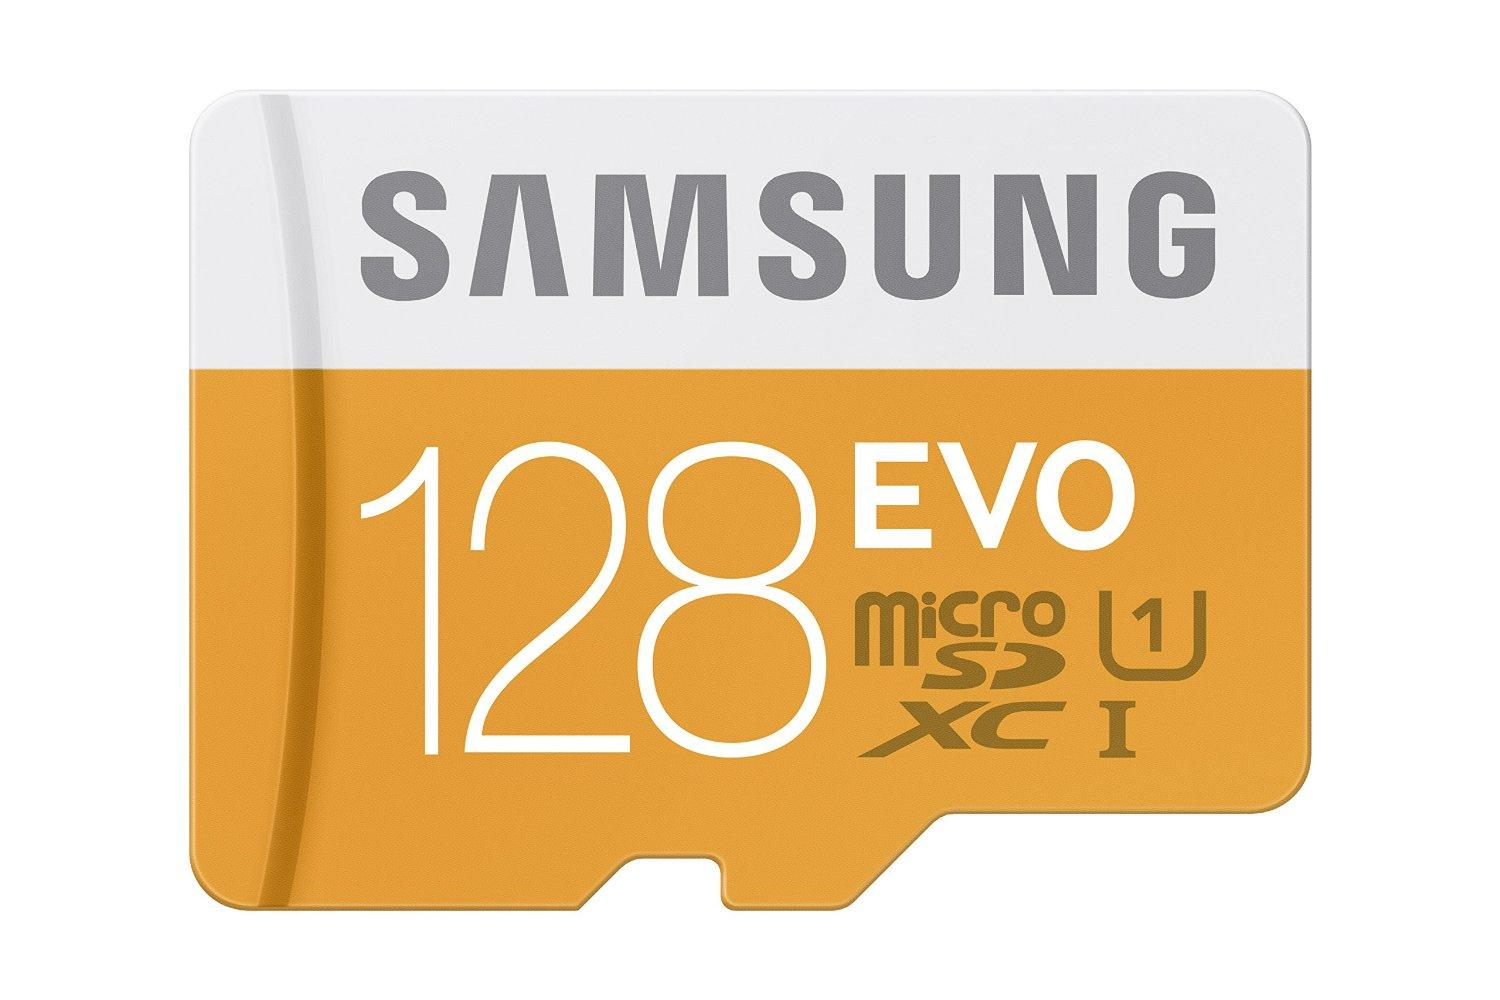 Samsung microSDXC 128GB EVO Memory Card with Adapter